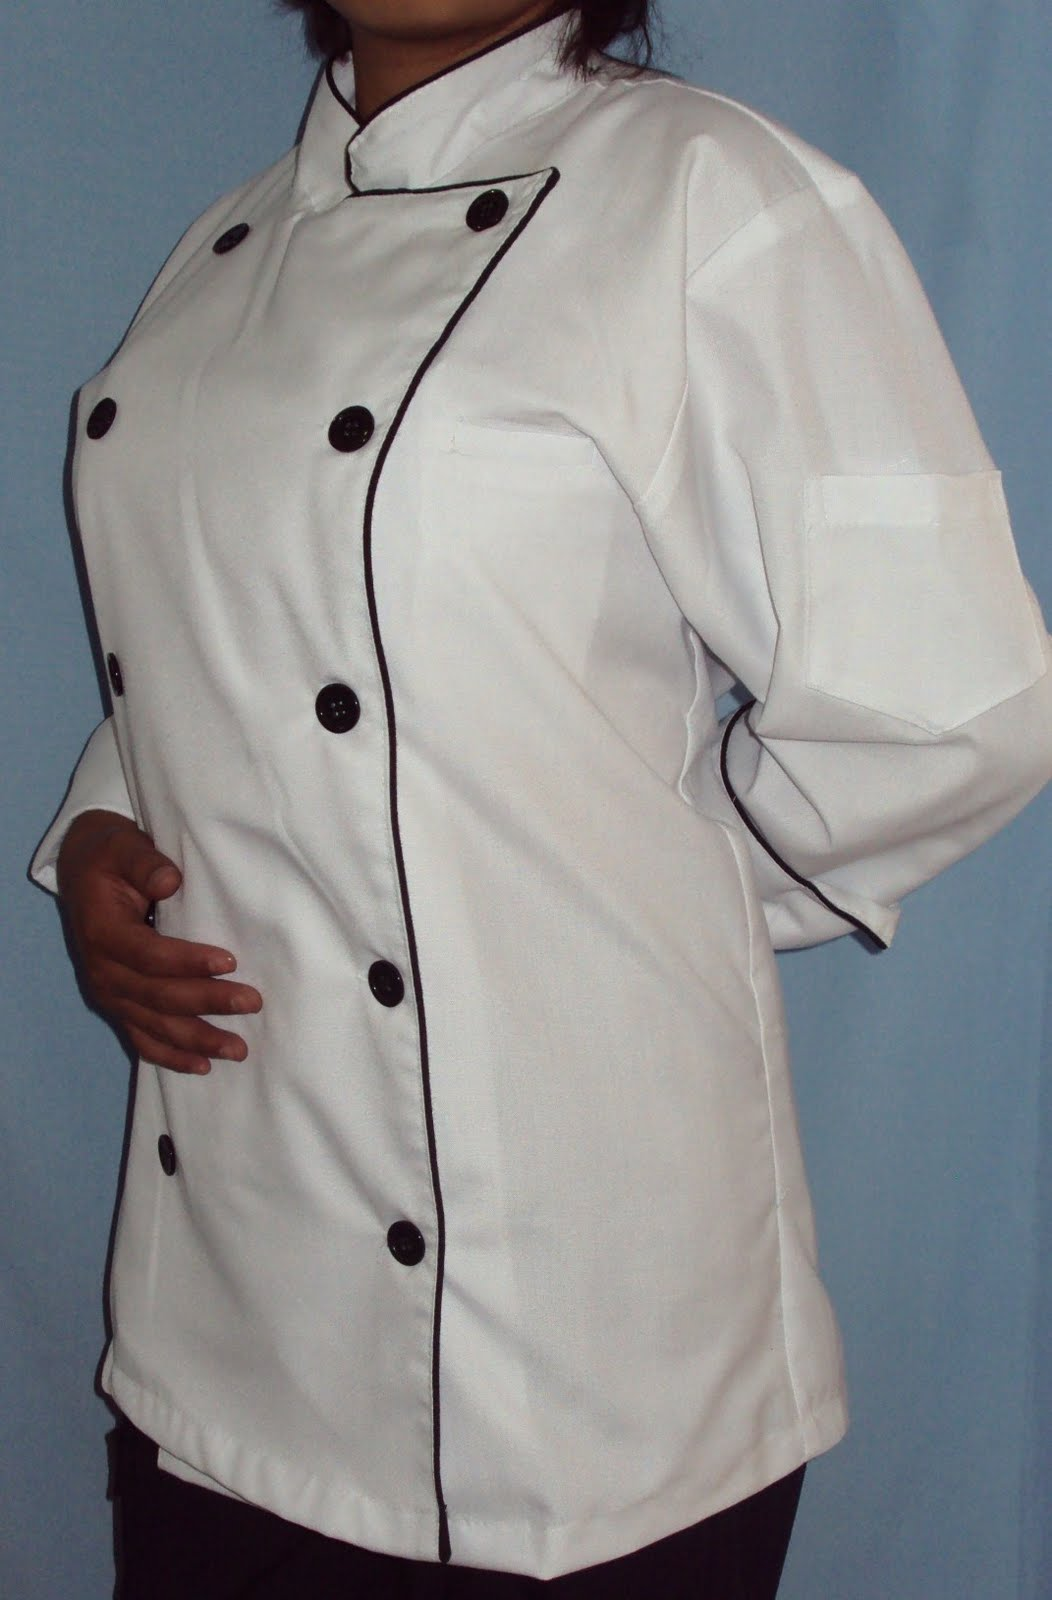 Chef Stock Photos, Images, & Pictures   Shutterstock